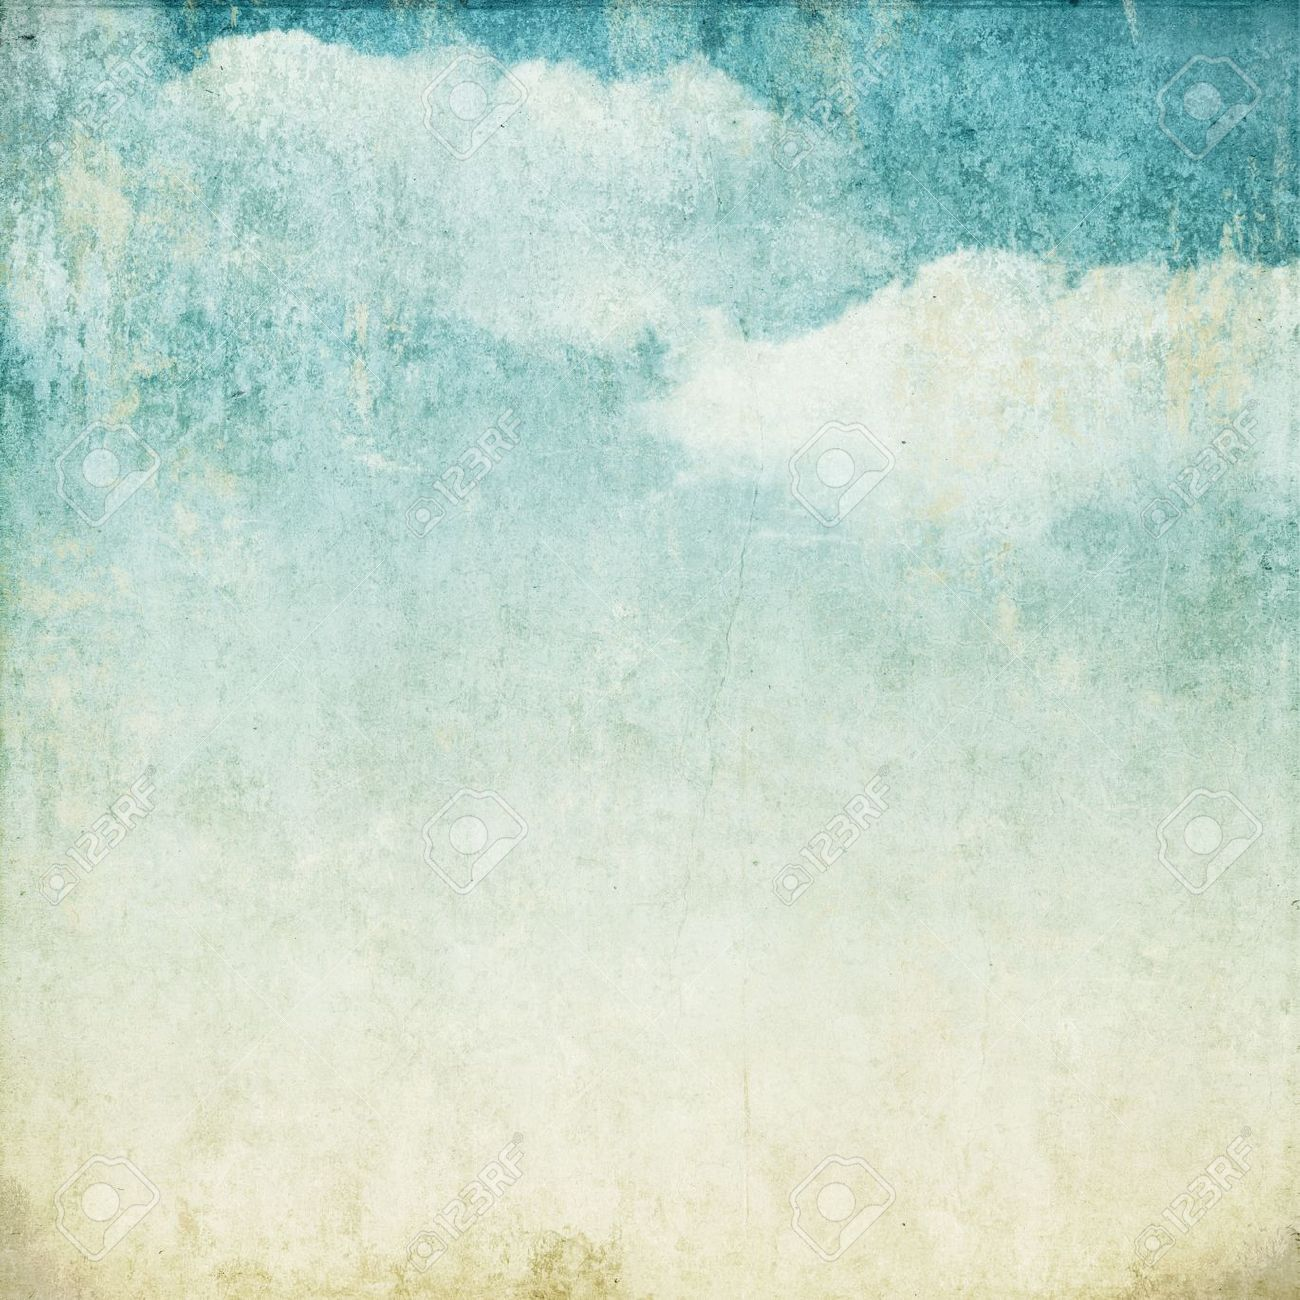 Vintage background in the blue shade with clouds Stock Photo - 14524822